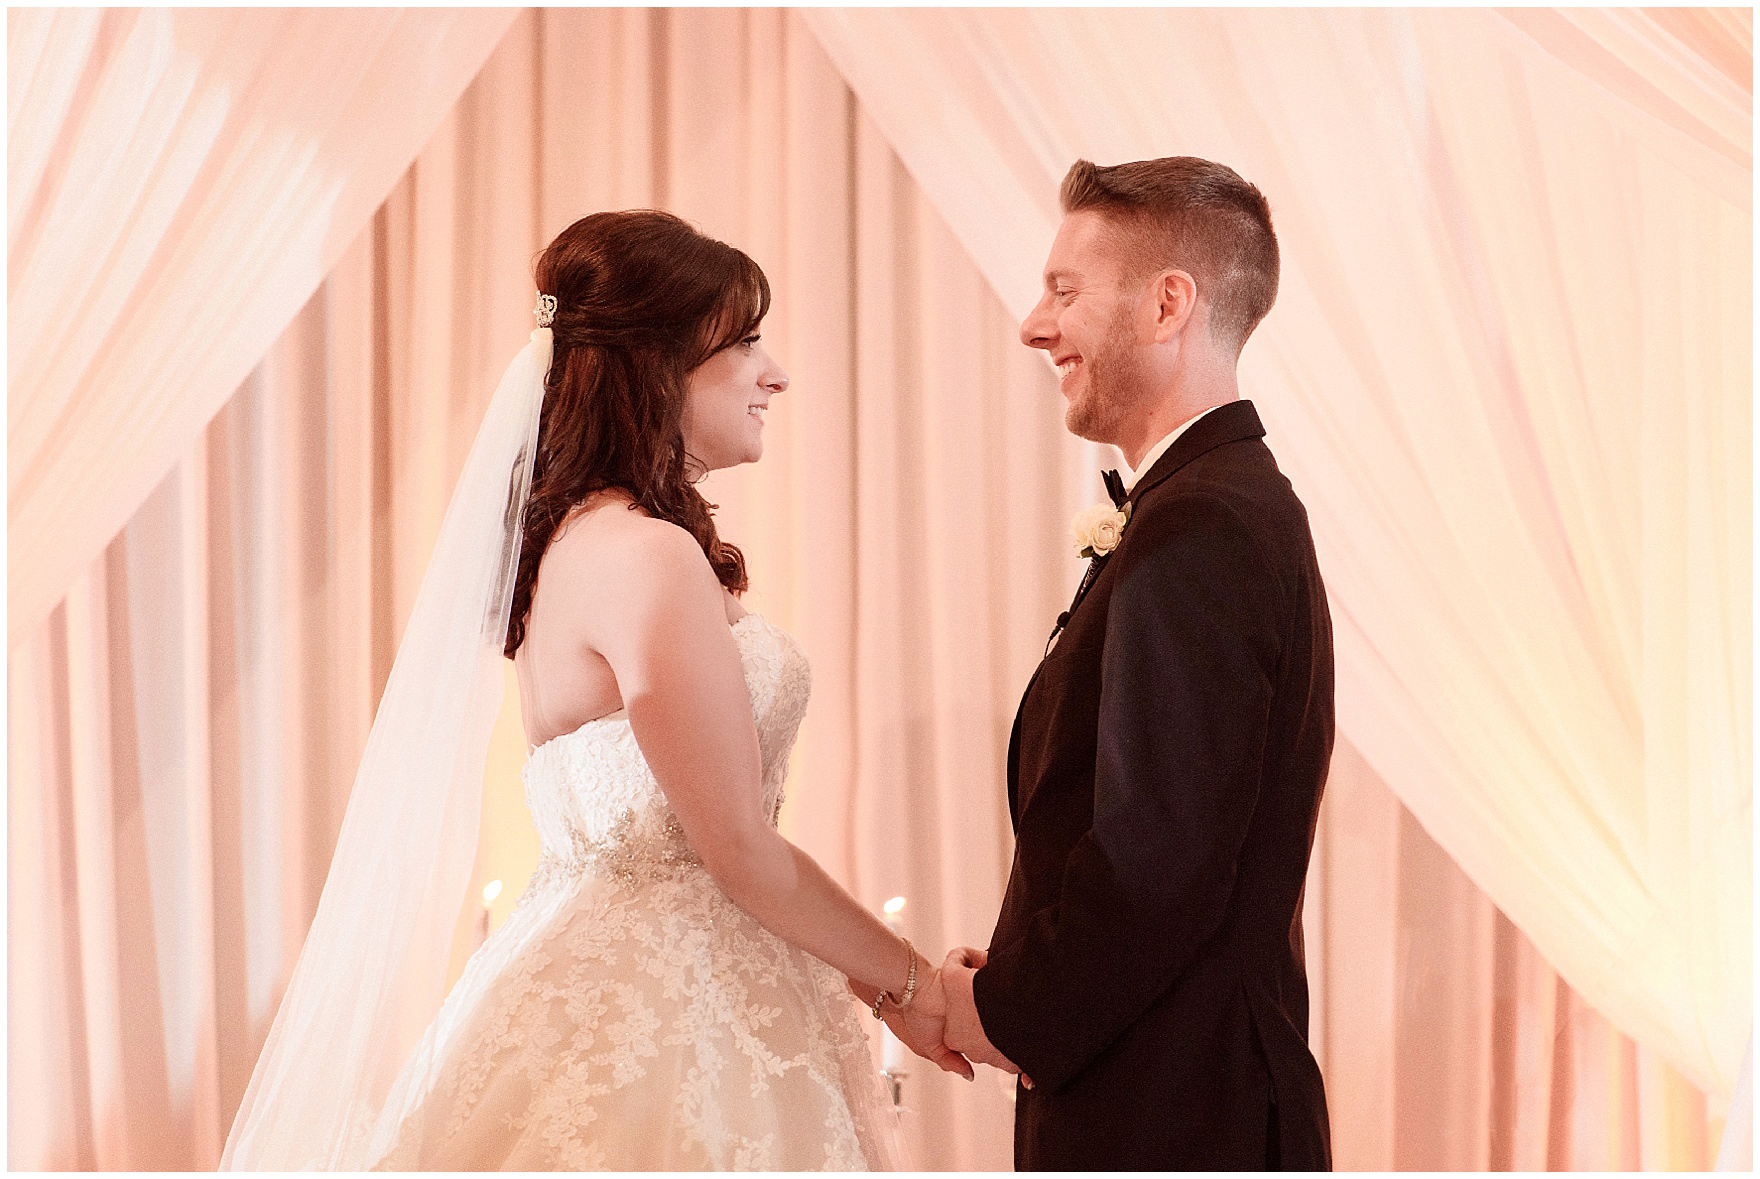 The bride and groom exchange vows at a Hotel Arista Naperville wedding.